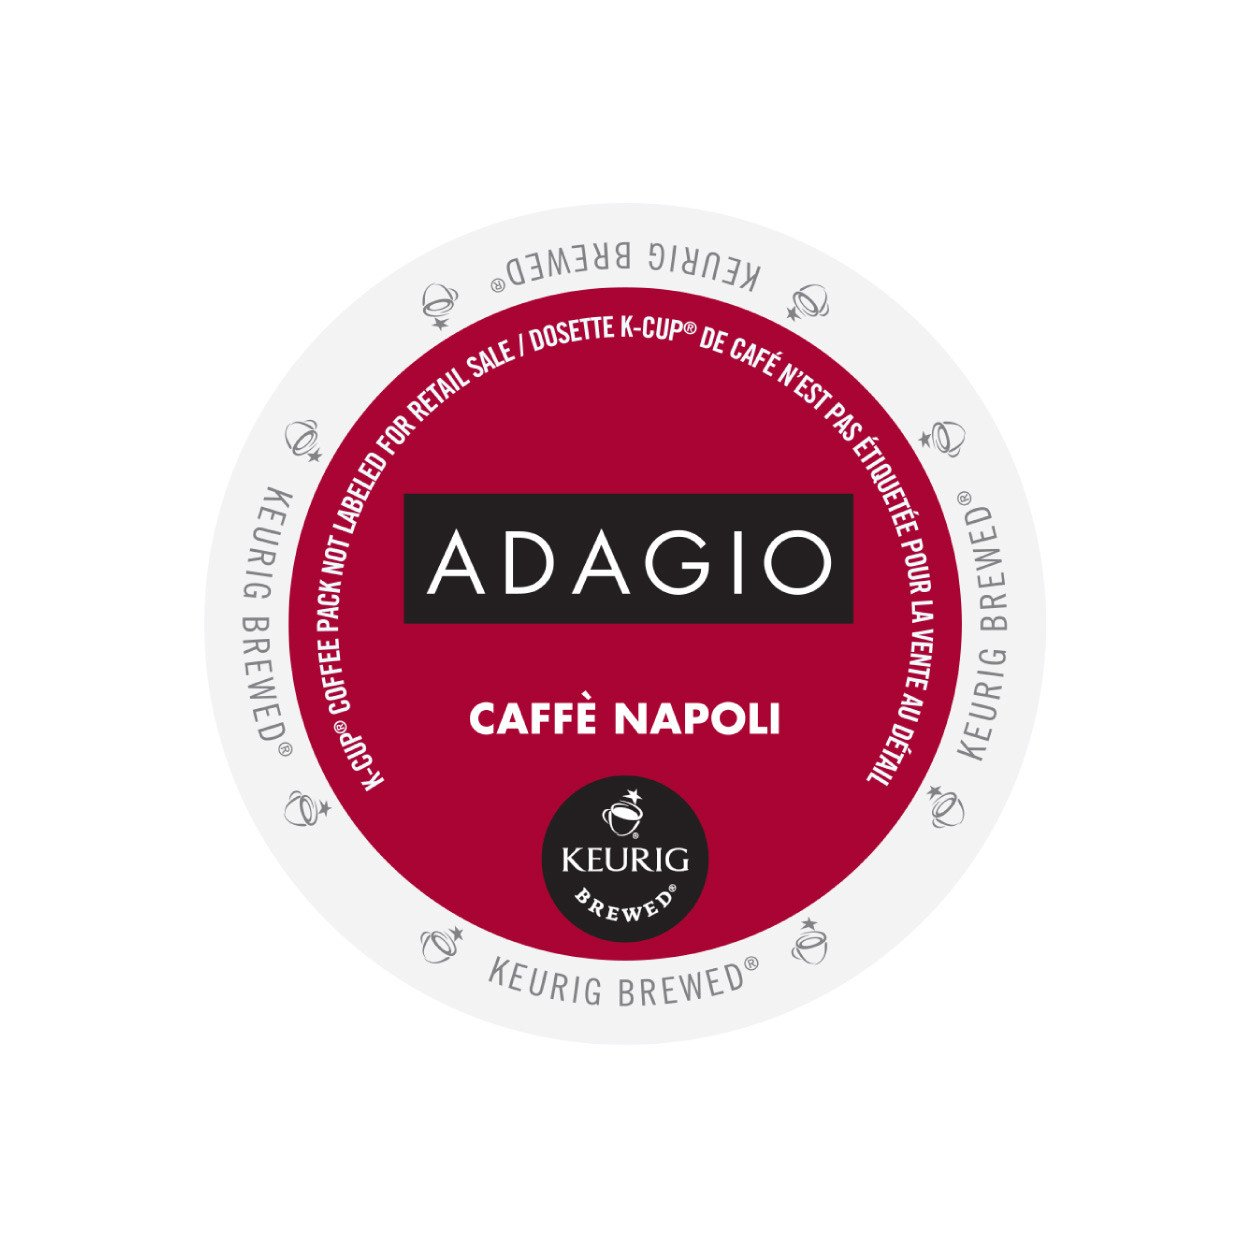 Adagio Cafe Napoli Dark Roast K Cup 24/Box